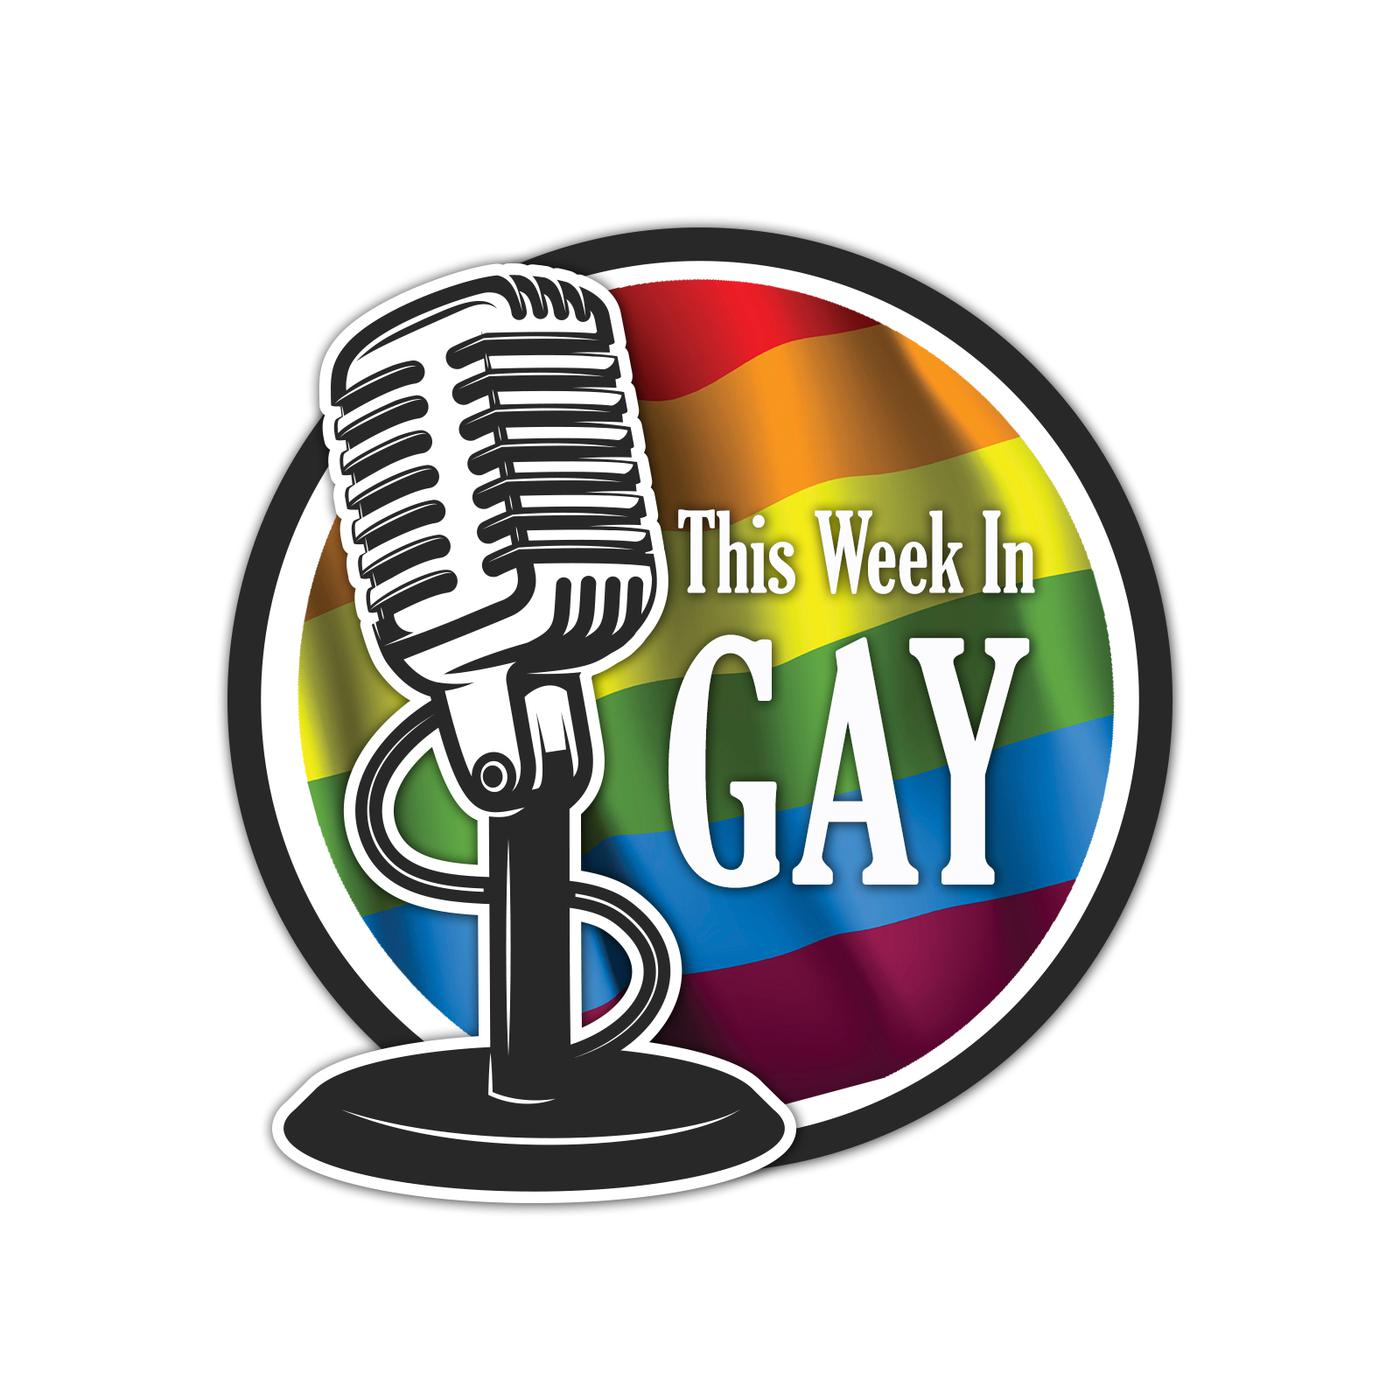 Podcast This Week In Gay